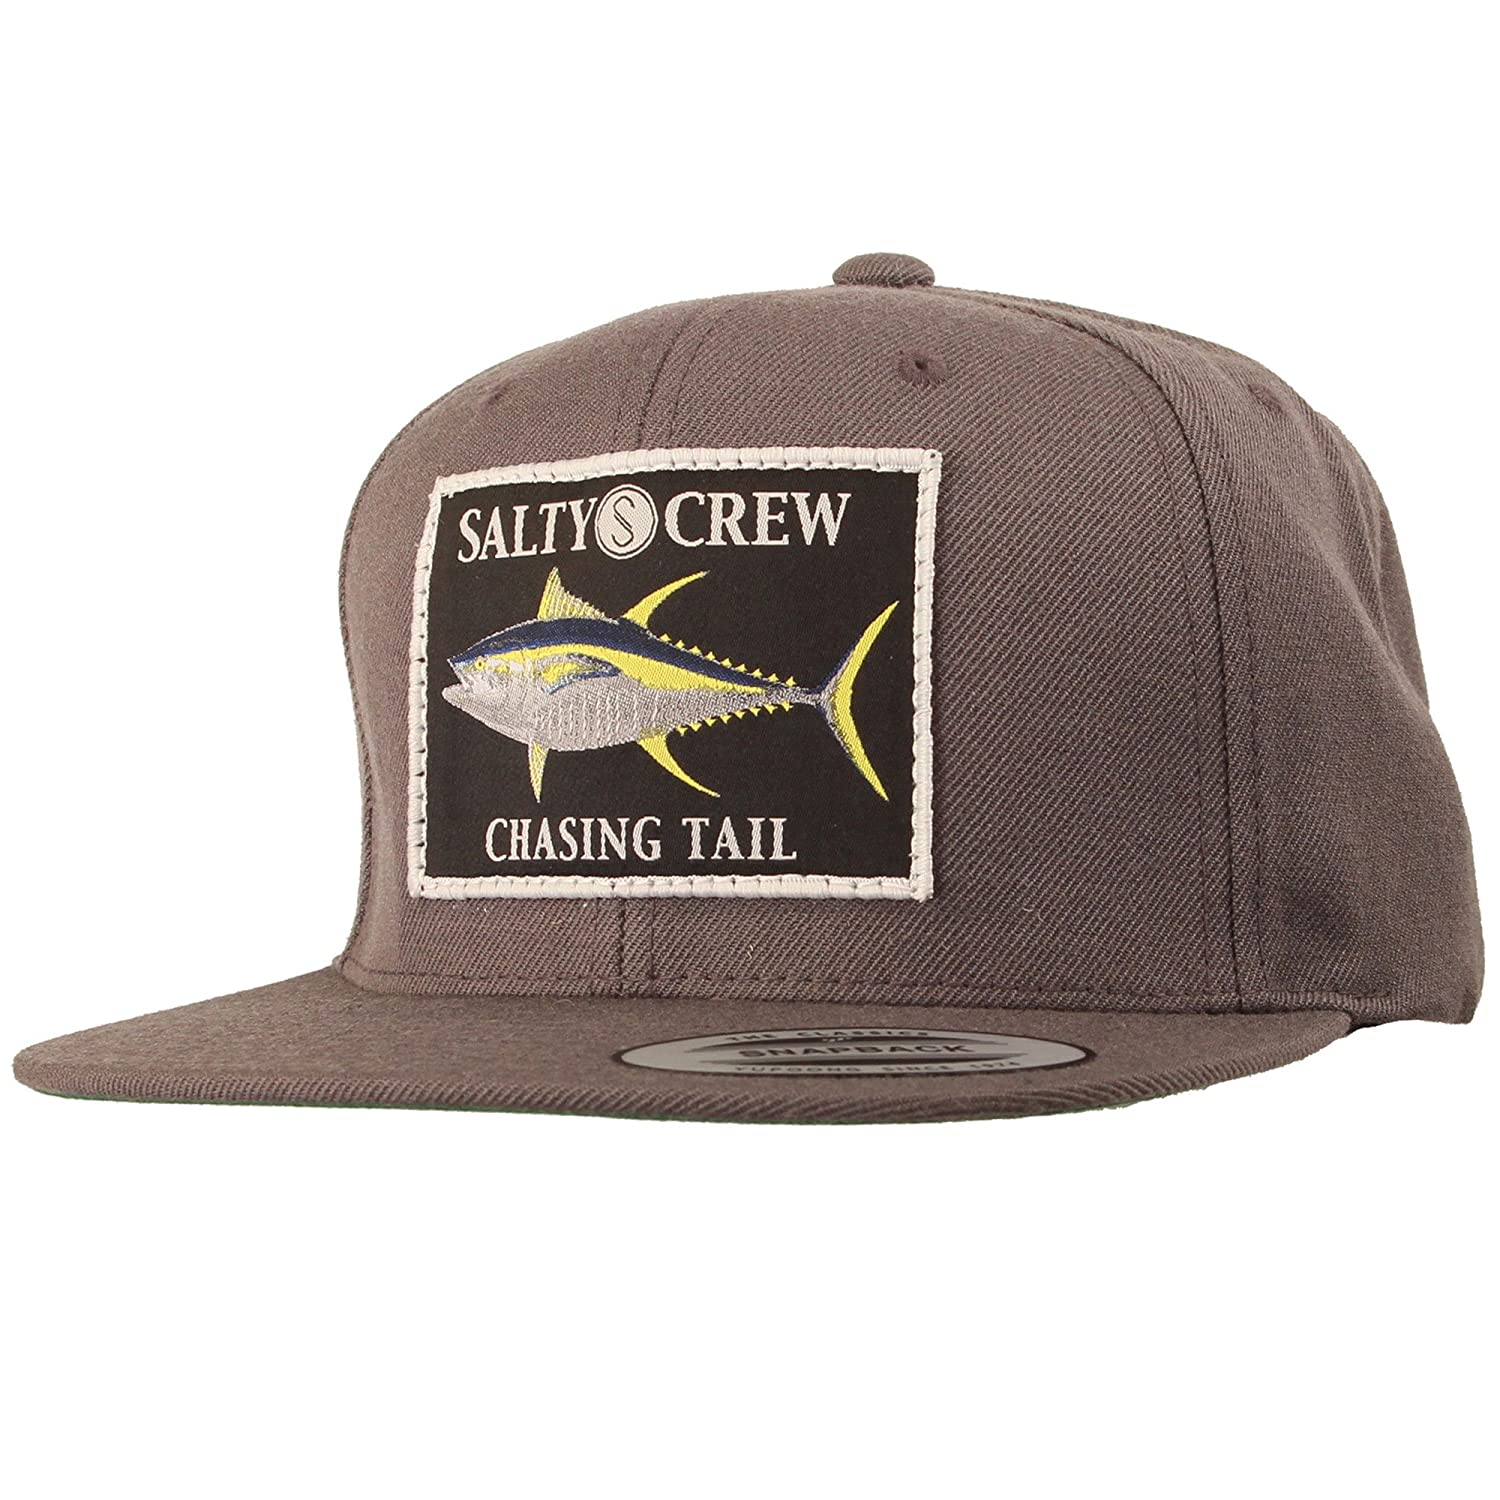 a4d747310d5 Salty Crew Men s Ahi Patched Hat - Grey -  Amazon.co.uk  Clothing